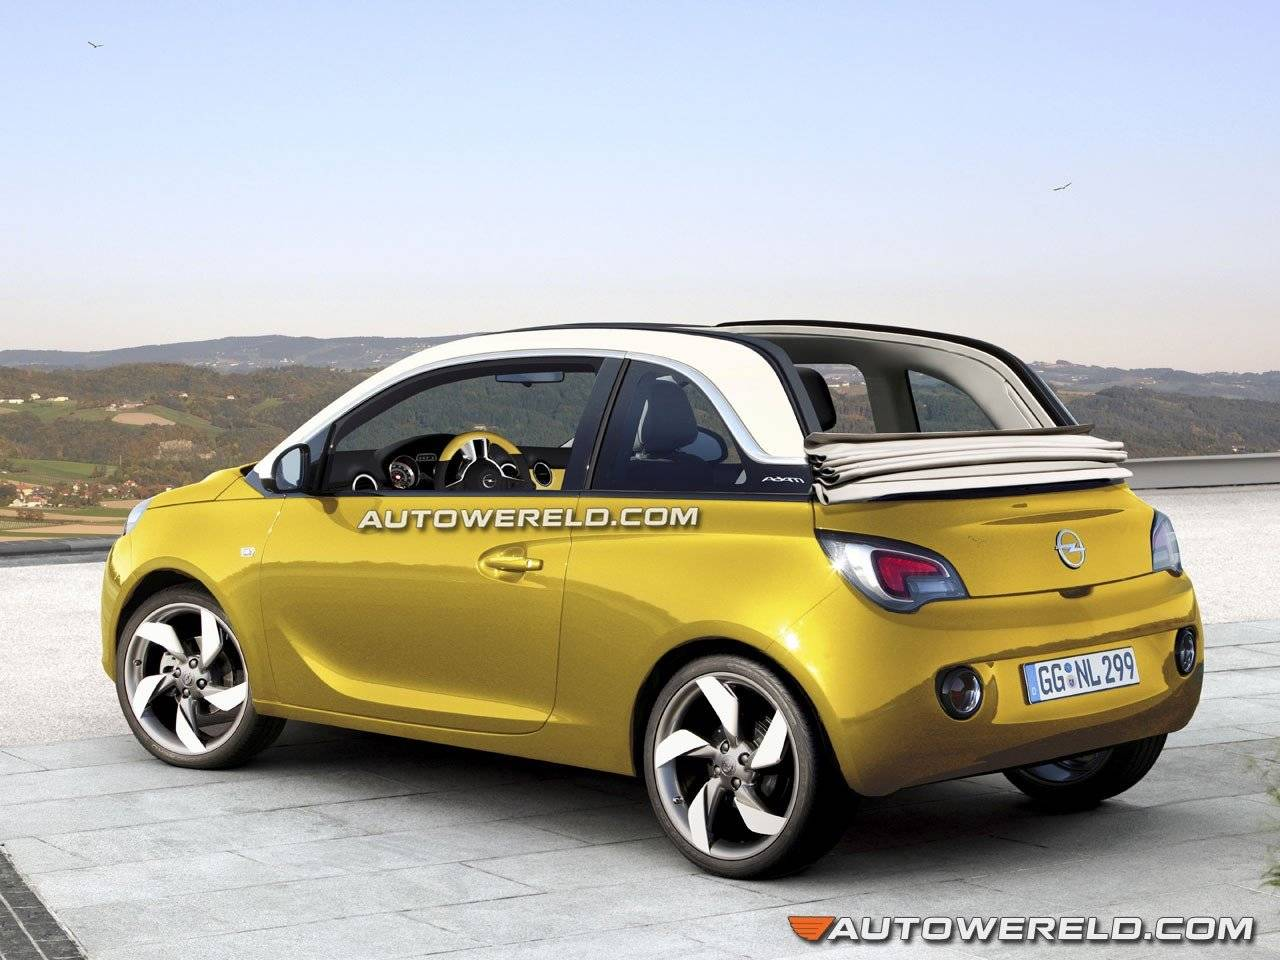 zo ziet de opel adam cabrio eruit autonieuws. Black Bedroom Furniture Sets. Home Design Ideas